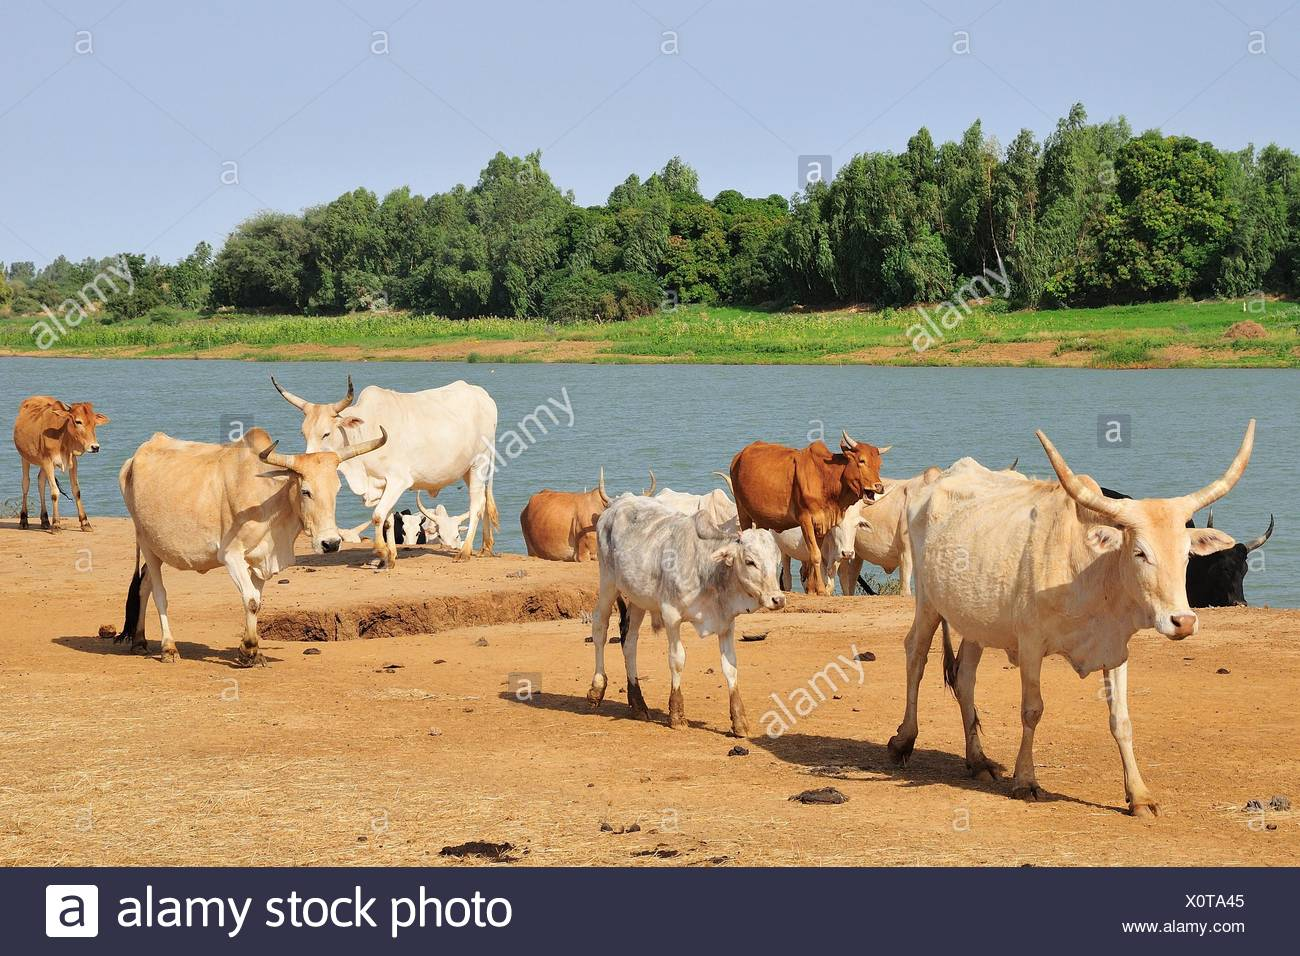 Cattle by the Senegal river, Bogue, Brakna region, Mauritania - Stock Image